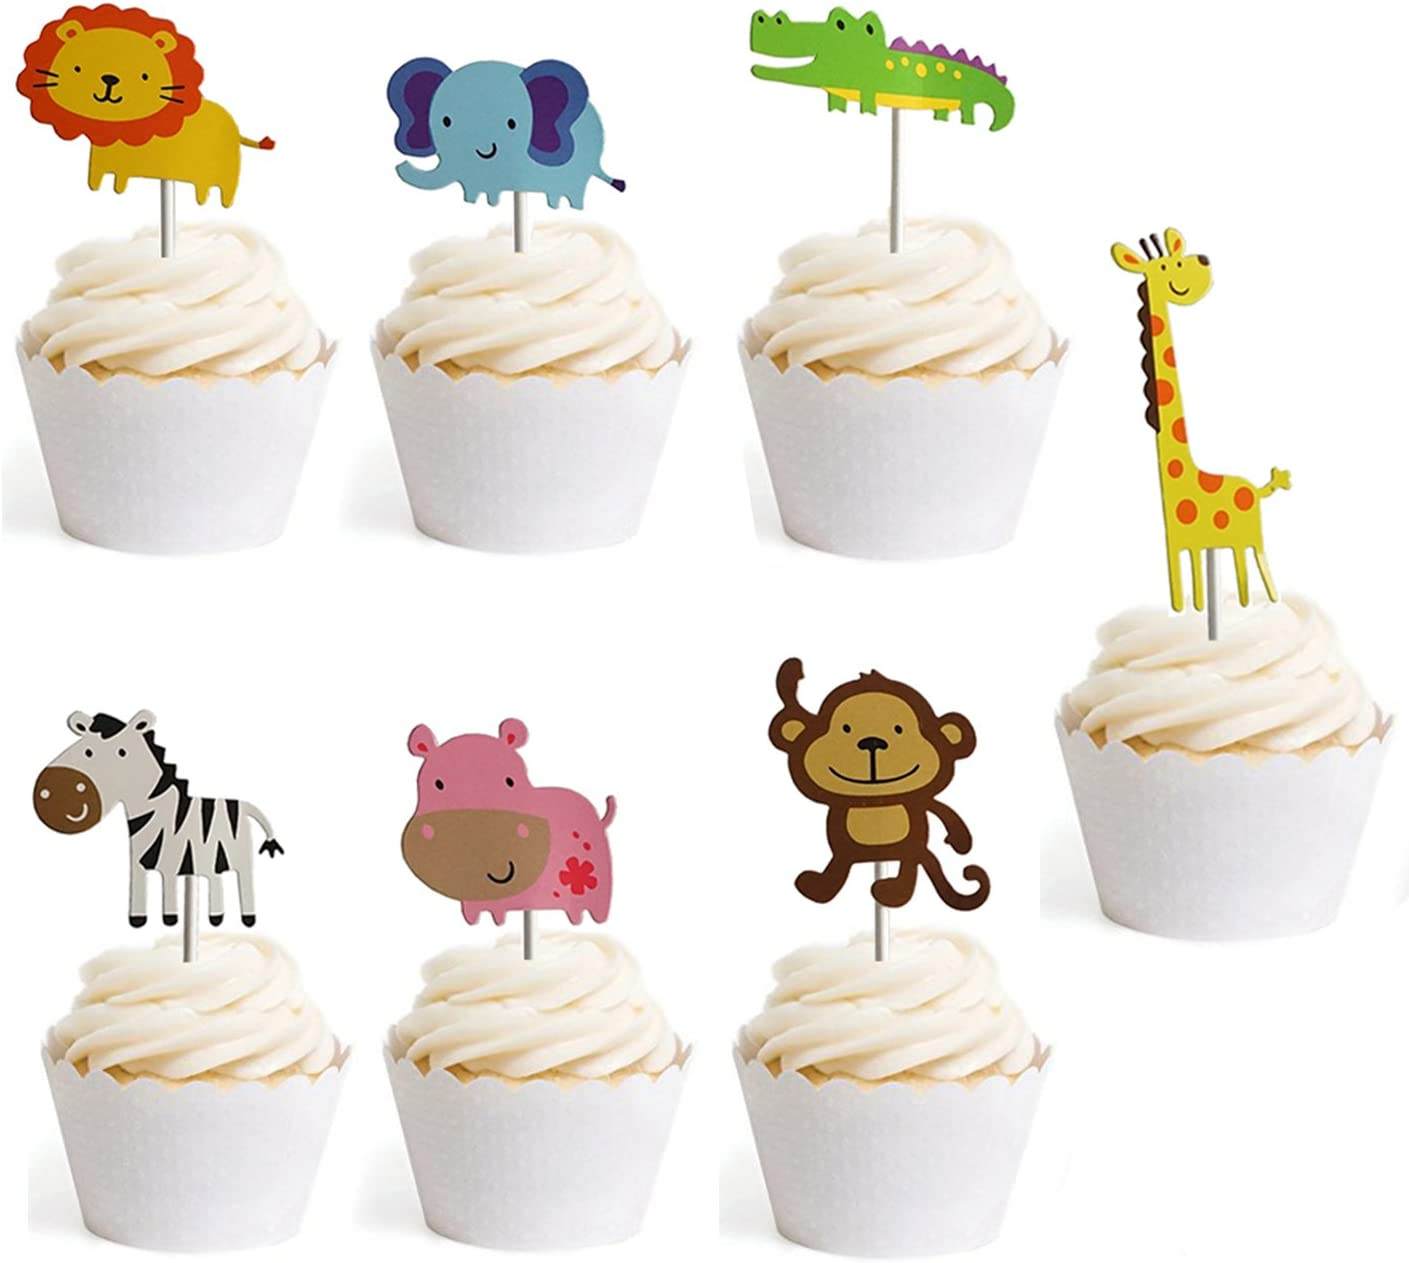 Summer Party Decoration 24 Set CC HOME Jungle Animal Party Decorations,Jungle Animal Cupcake Toppers//Picks /& Forest Theme Cupcake Wrappers Wild One Birthday Decorations for Hawaiian,Luau,Tropical,Spring